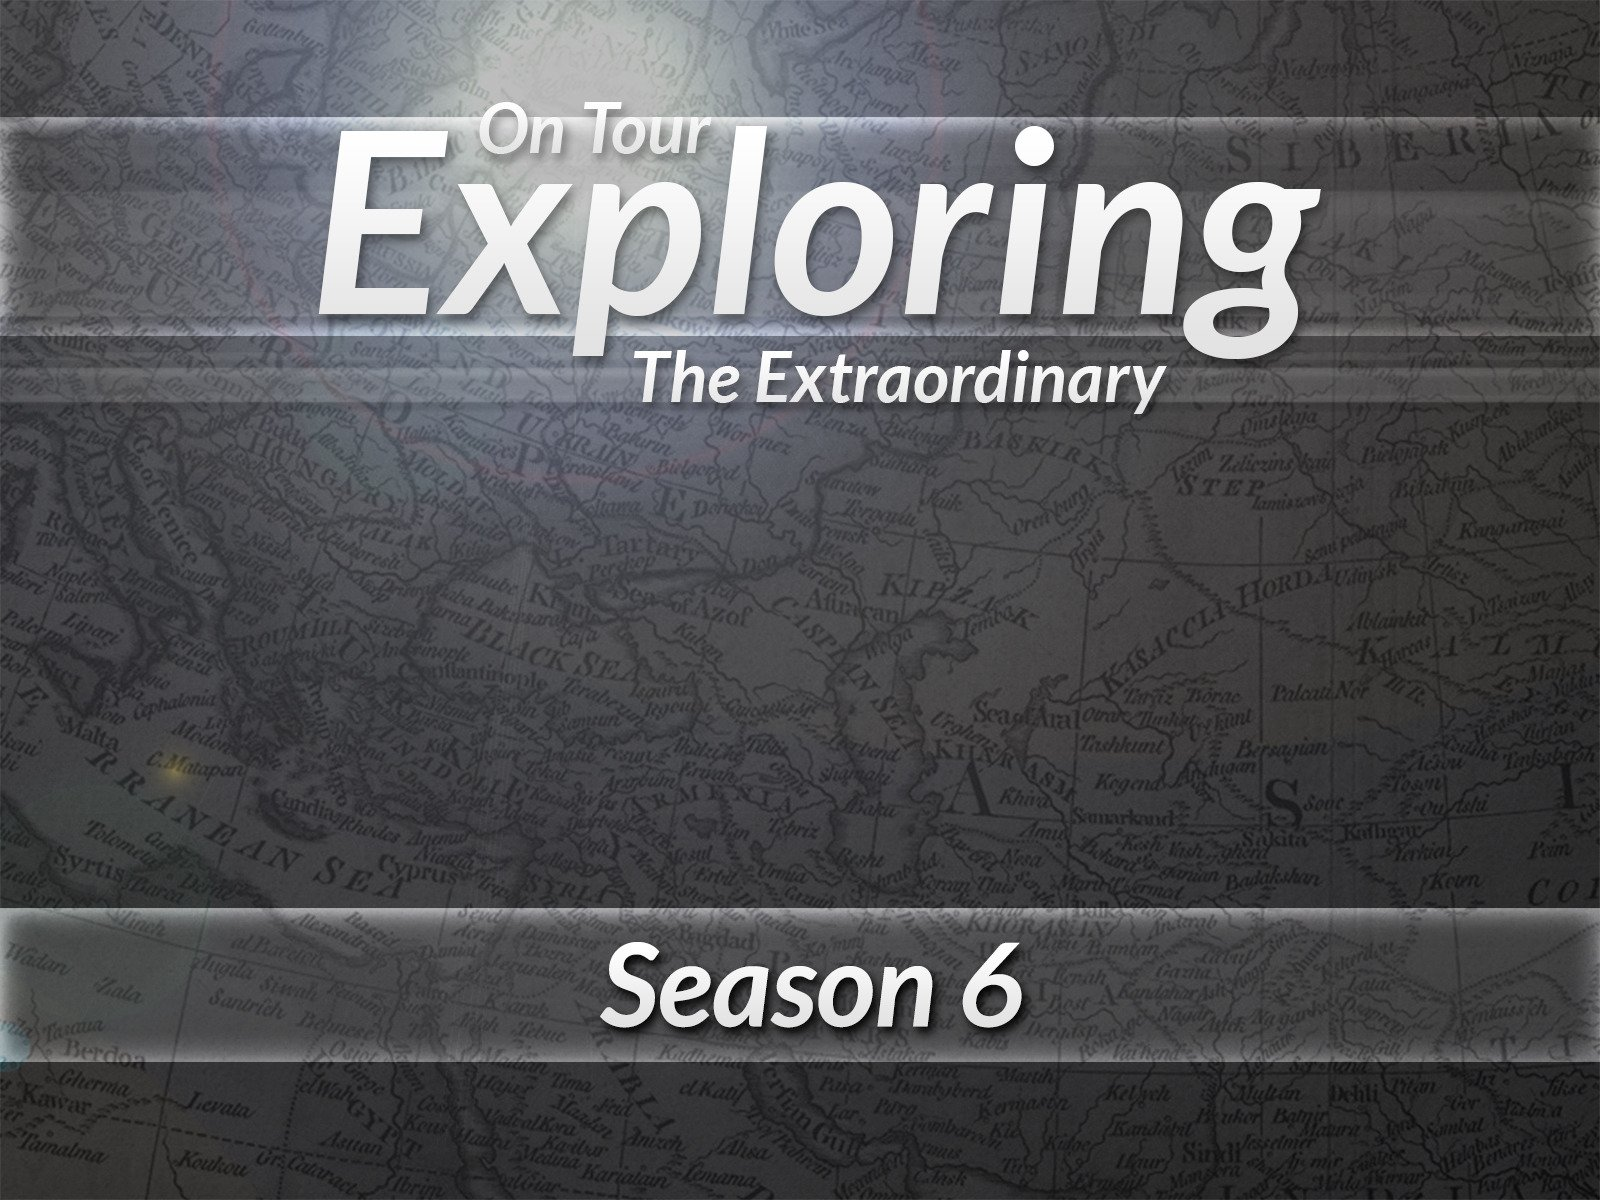 On Tour: Exploring the Extraordinary - Season 6